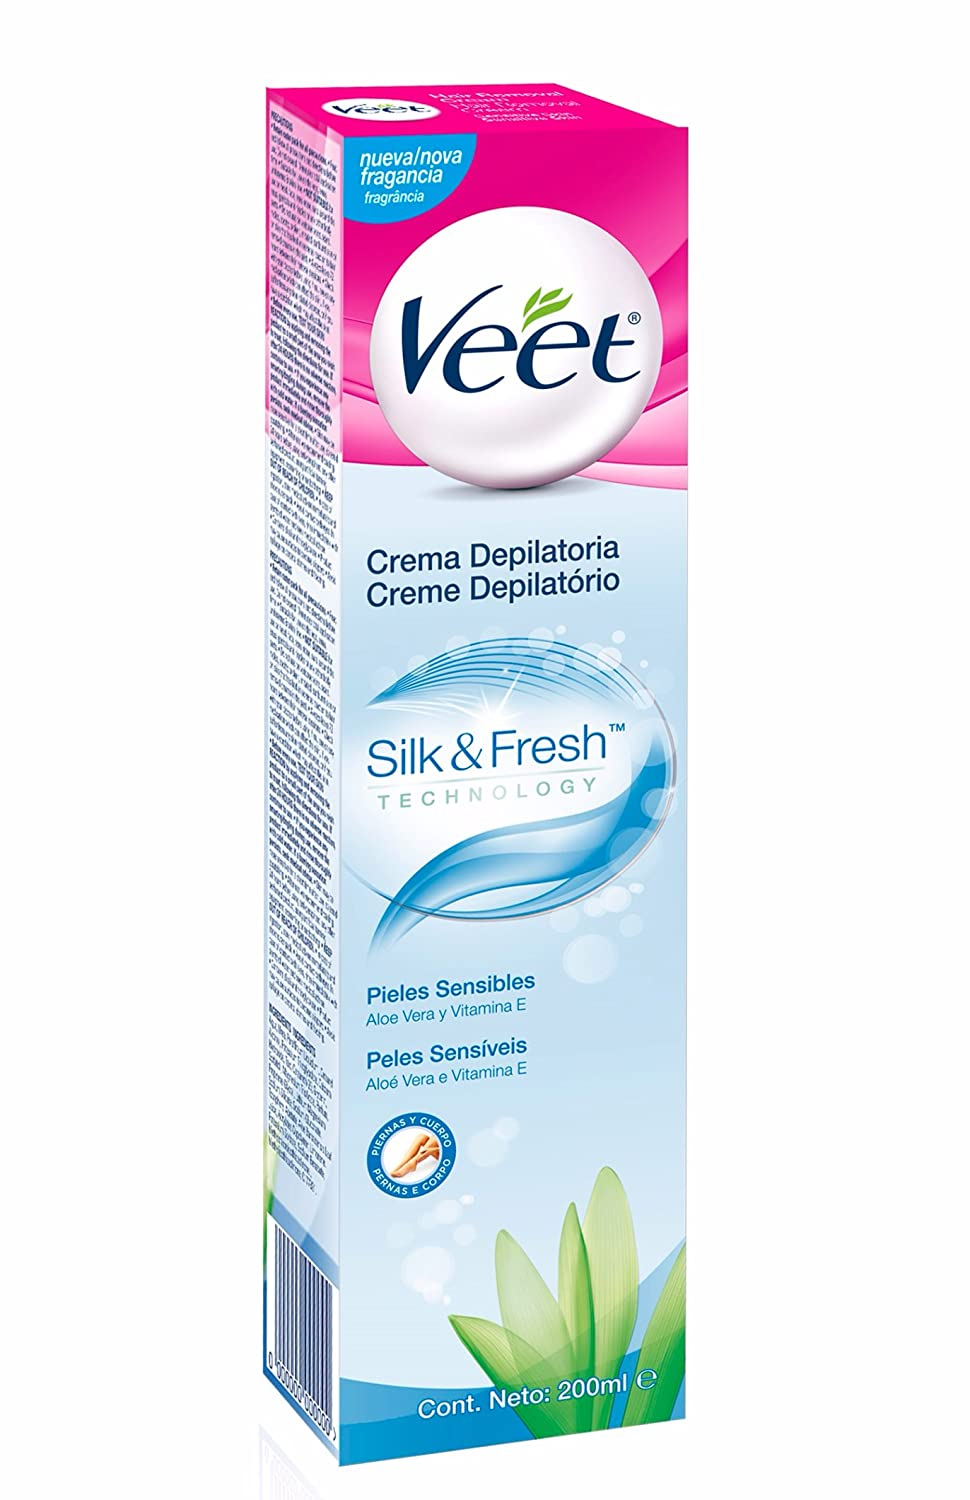 Veet Crema Depilatoria Pieles Sensibles - 20 cl: Amazon.es ...